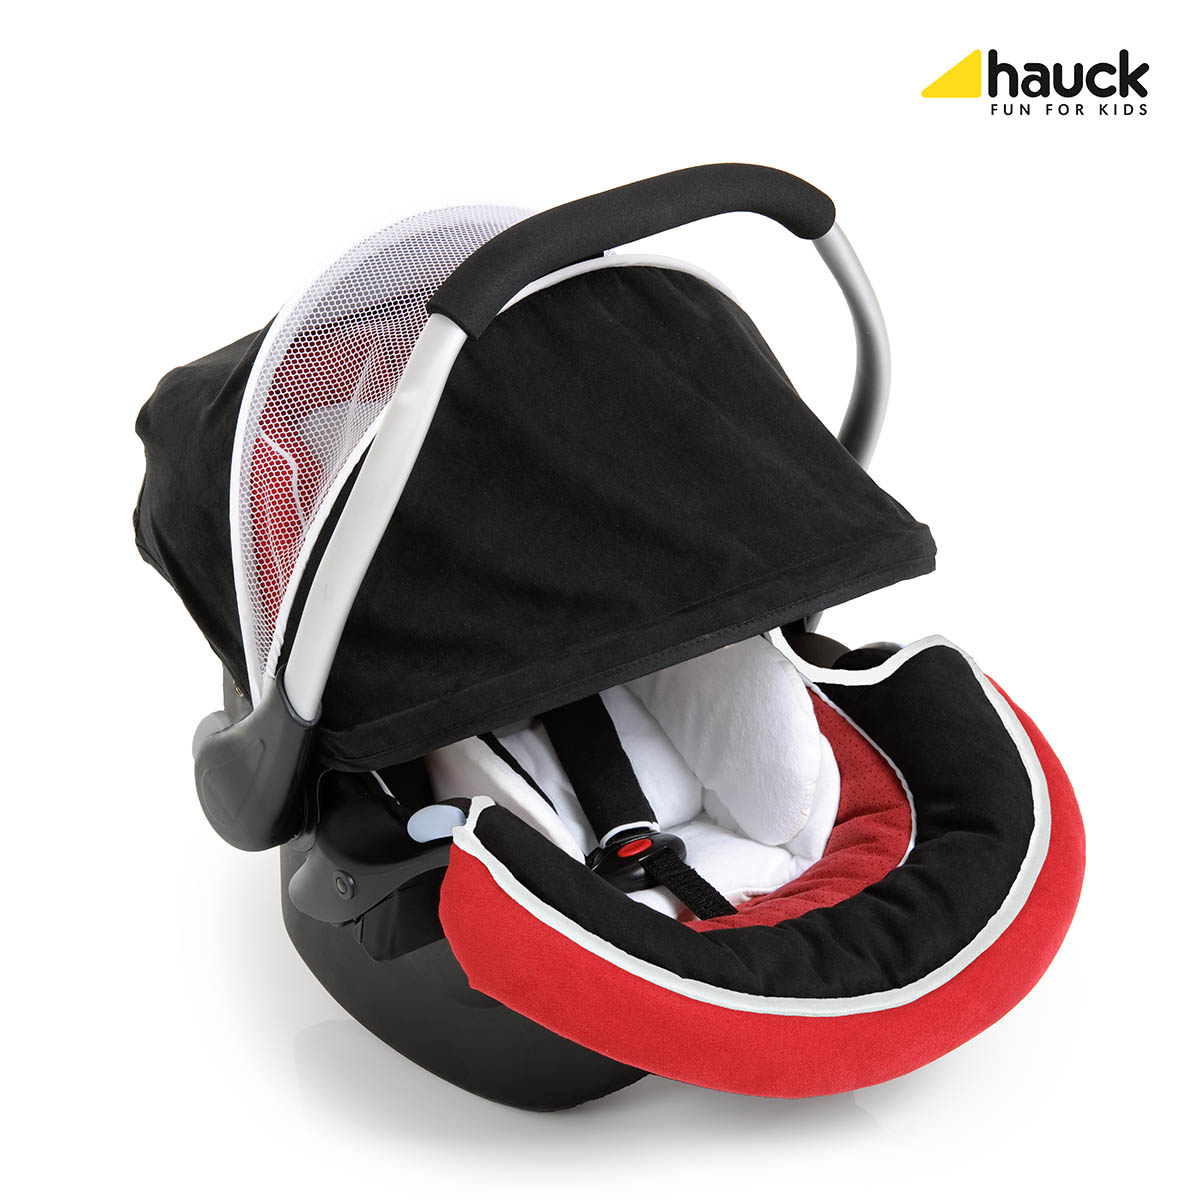 Hauck Infant Carrier Zero Plus Select Buy At Kidsroom